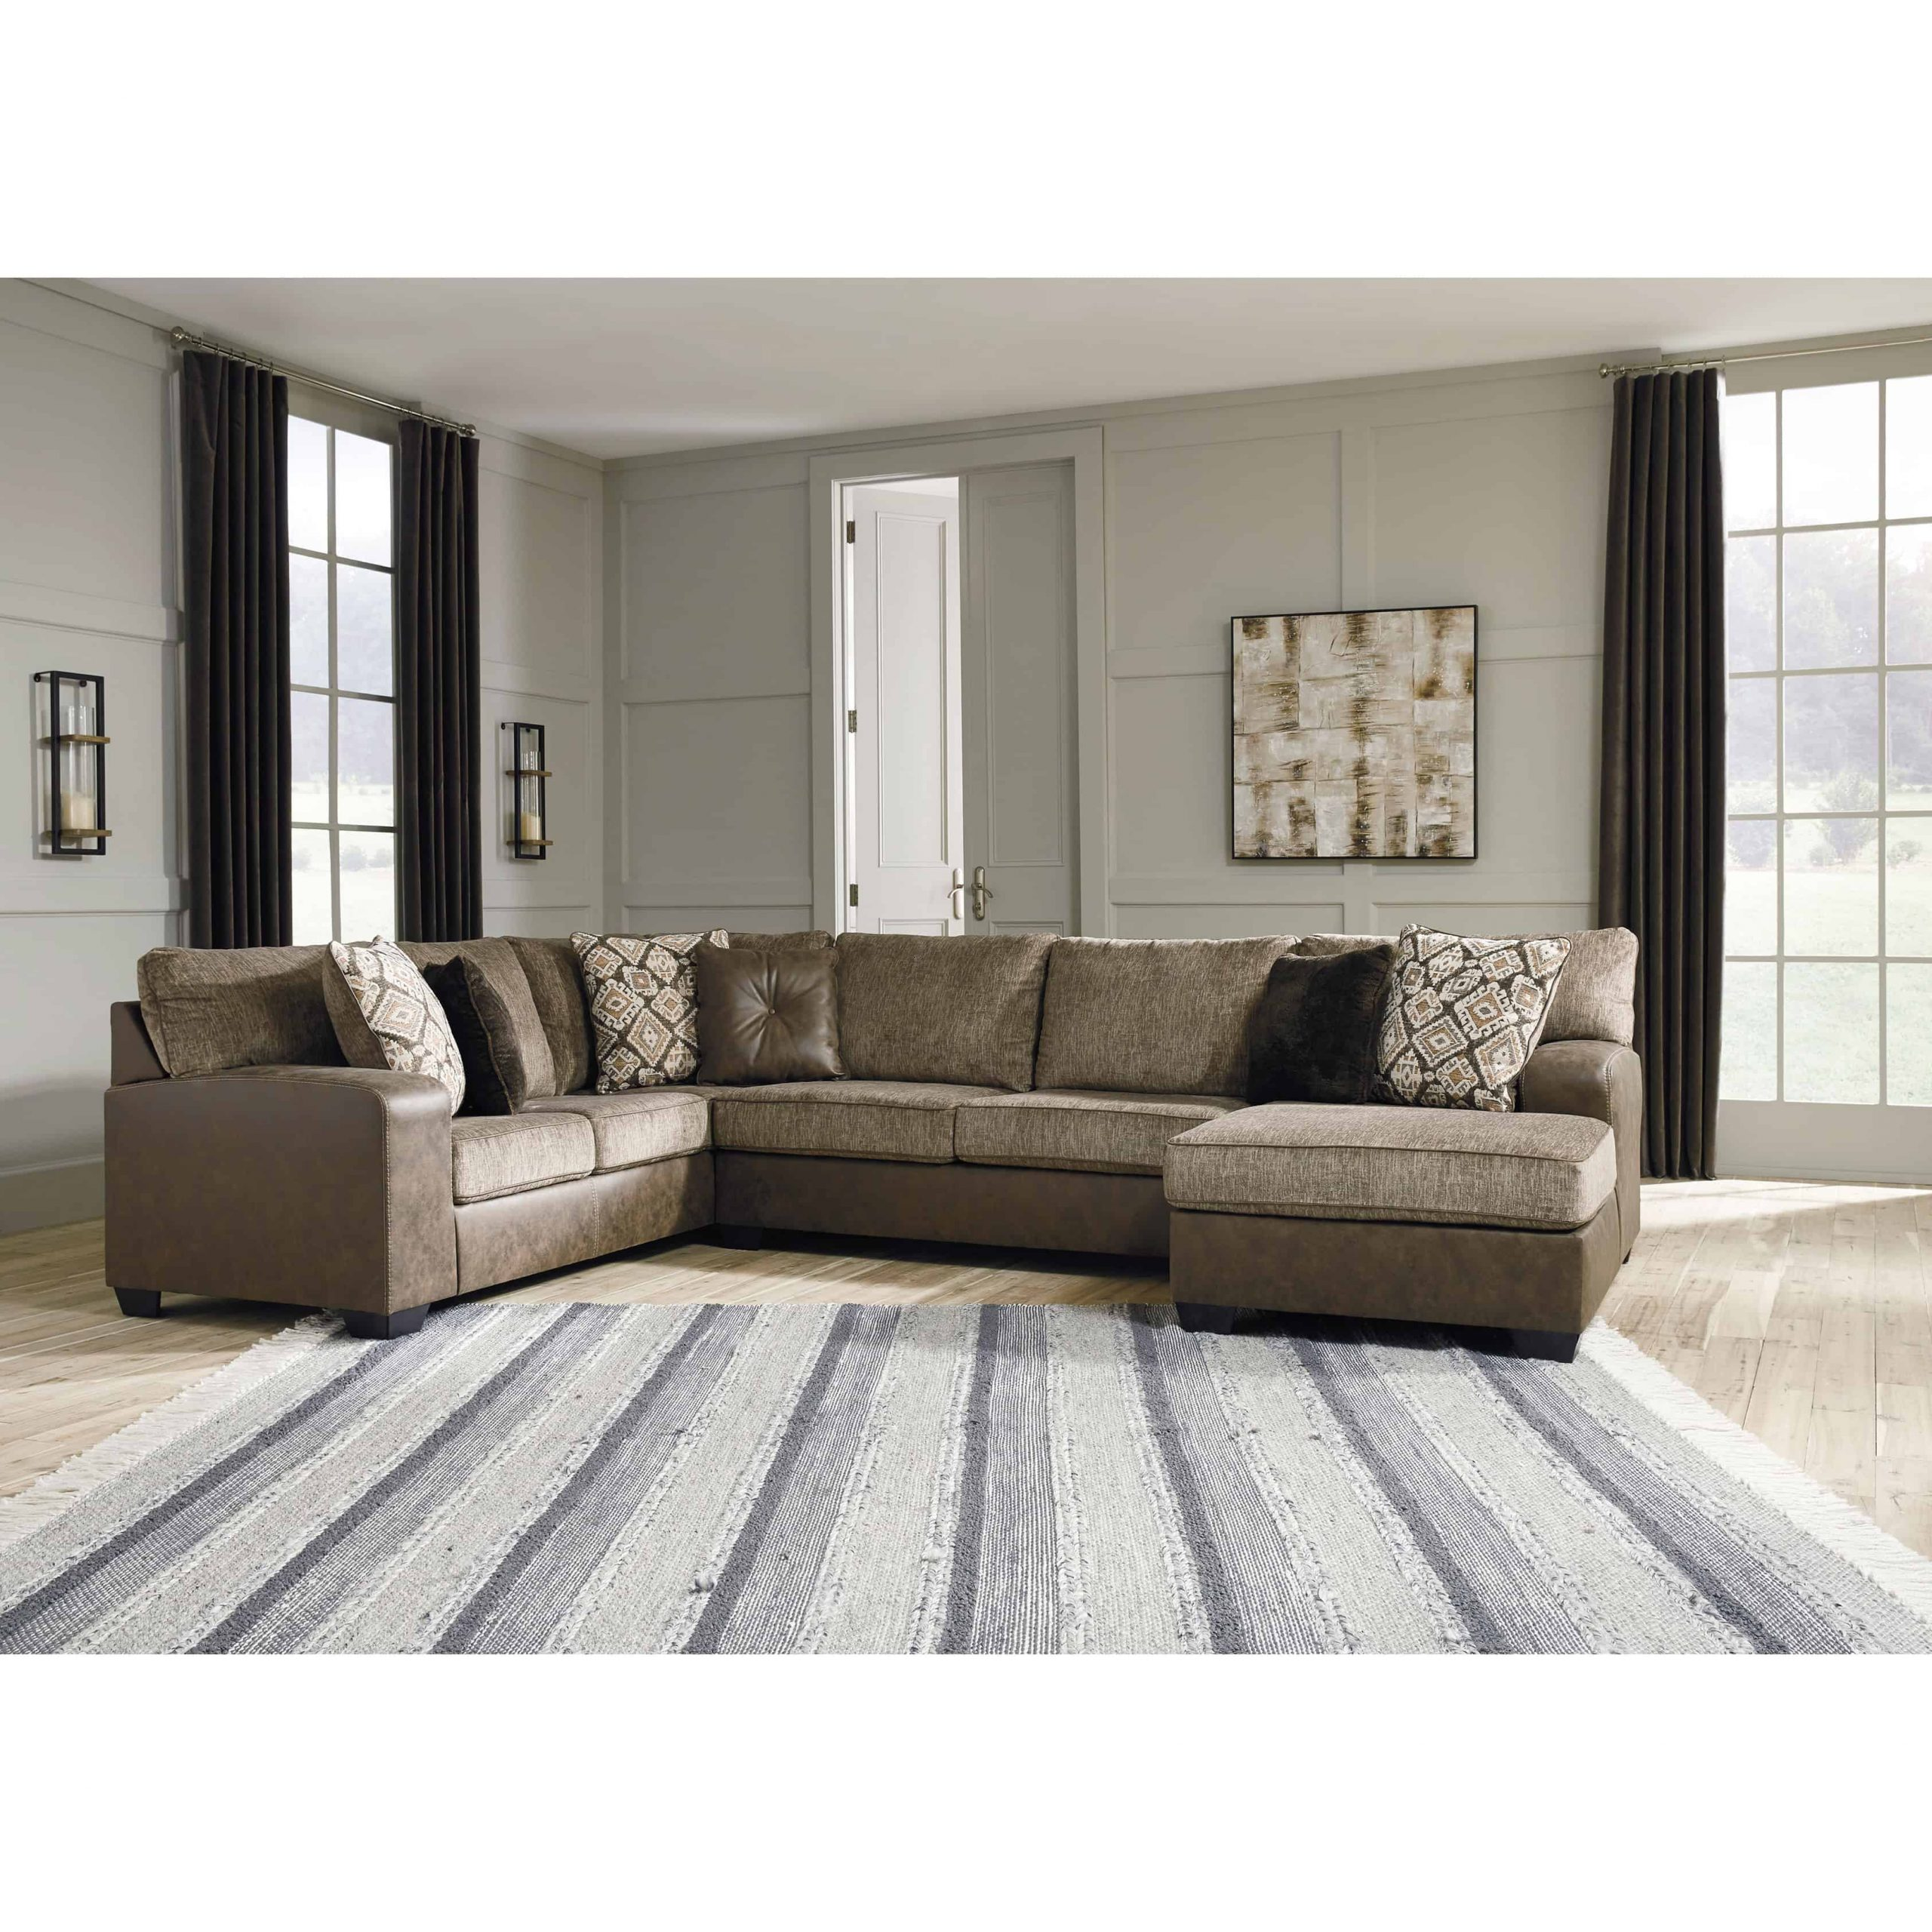 Abalone 3 Piece Raf Chaise Sectional | Furnishmyhome (View 6 of 15)